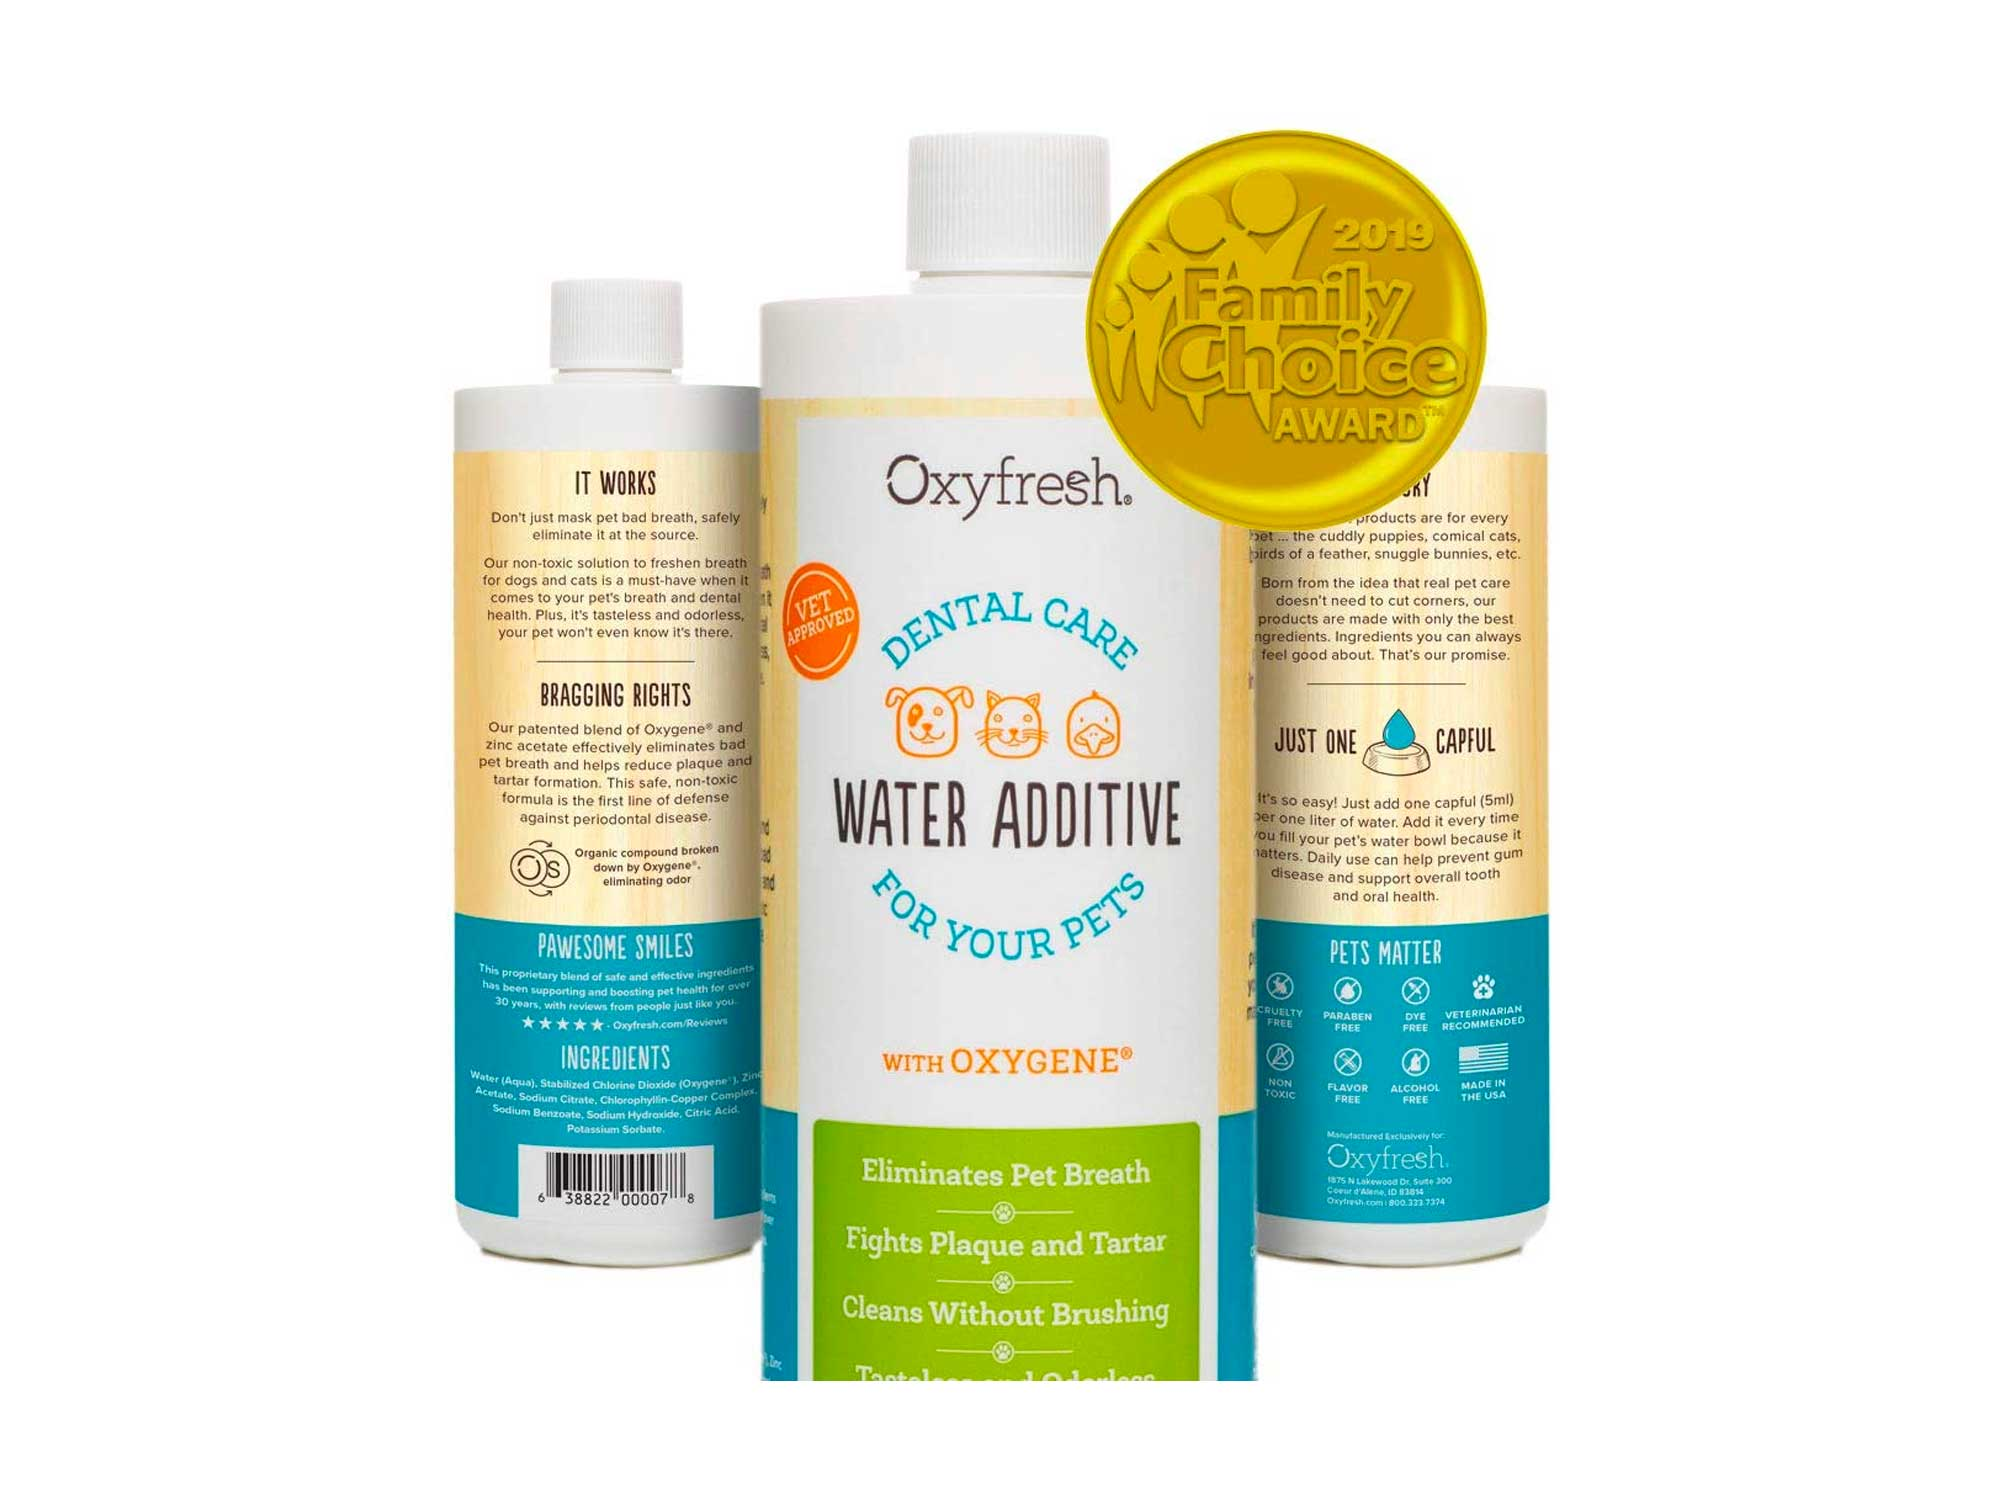 Oxyfresh Premium Pet Dental Care Solution Pet Water Additive: Best Way to Eliminate Bad Dog & Cat Breath- Fights Tartar & Plaque | Vet Recommended!